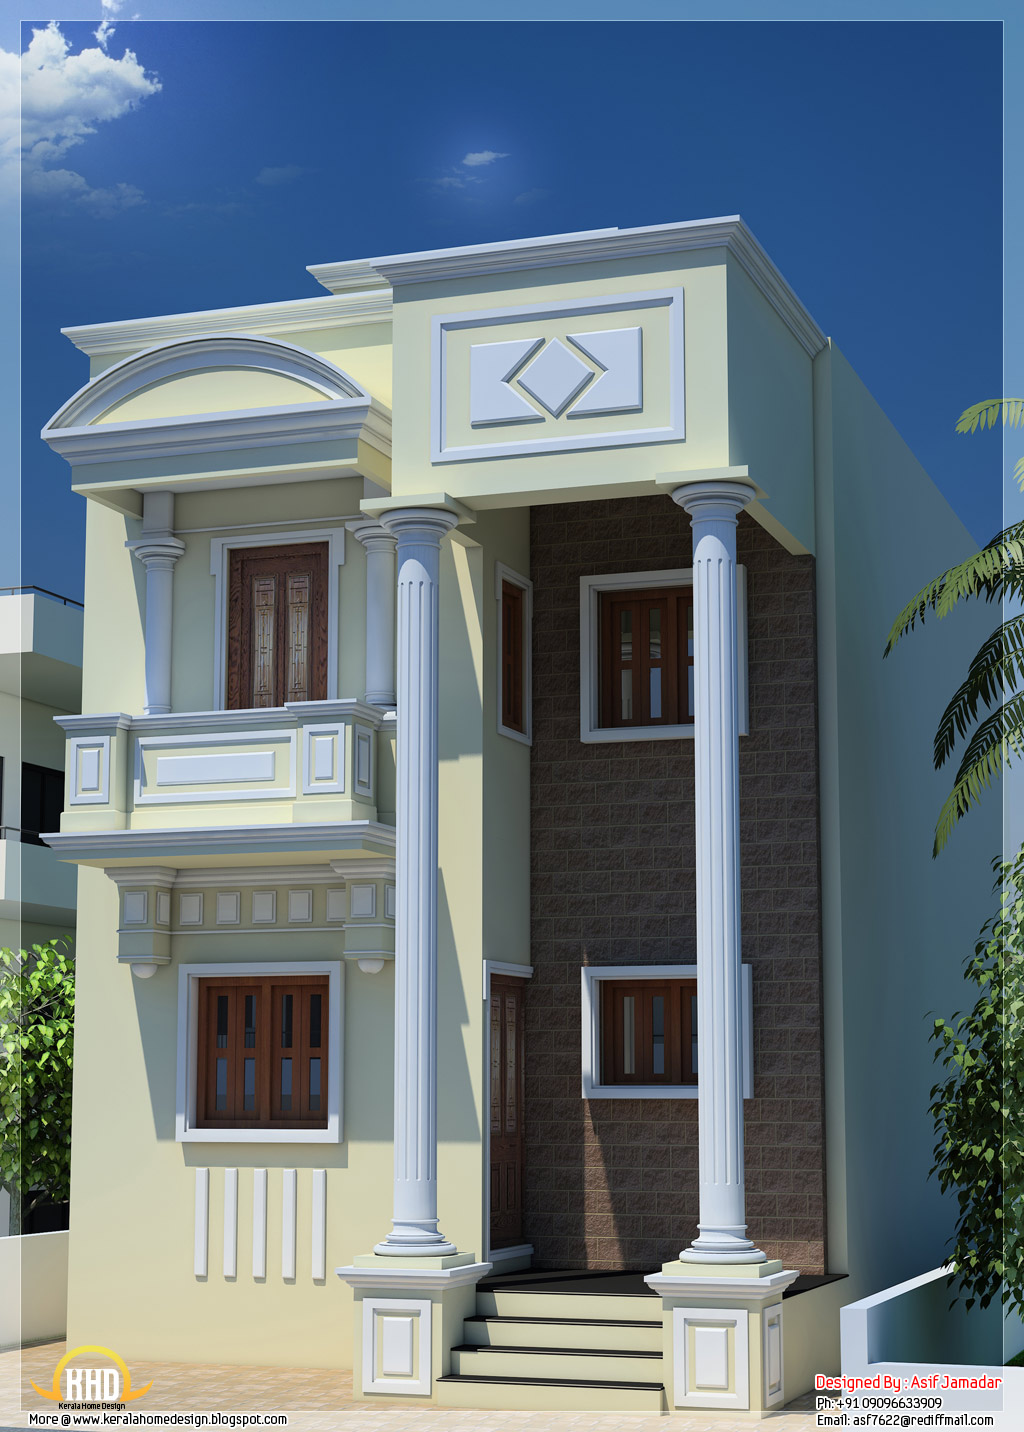 small house architecture design in india - House Design For Small Area